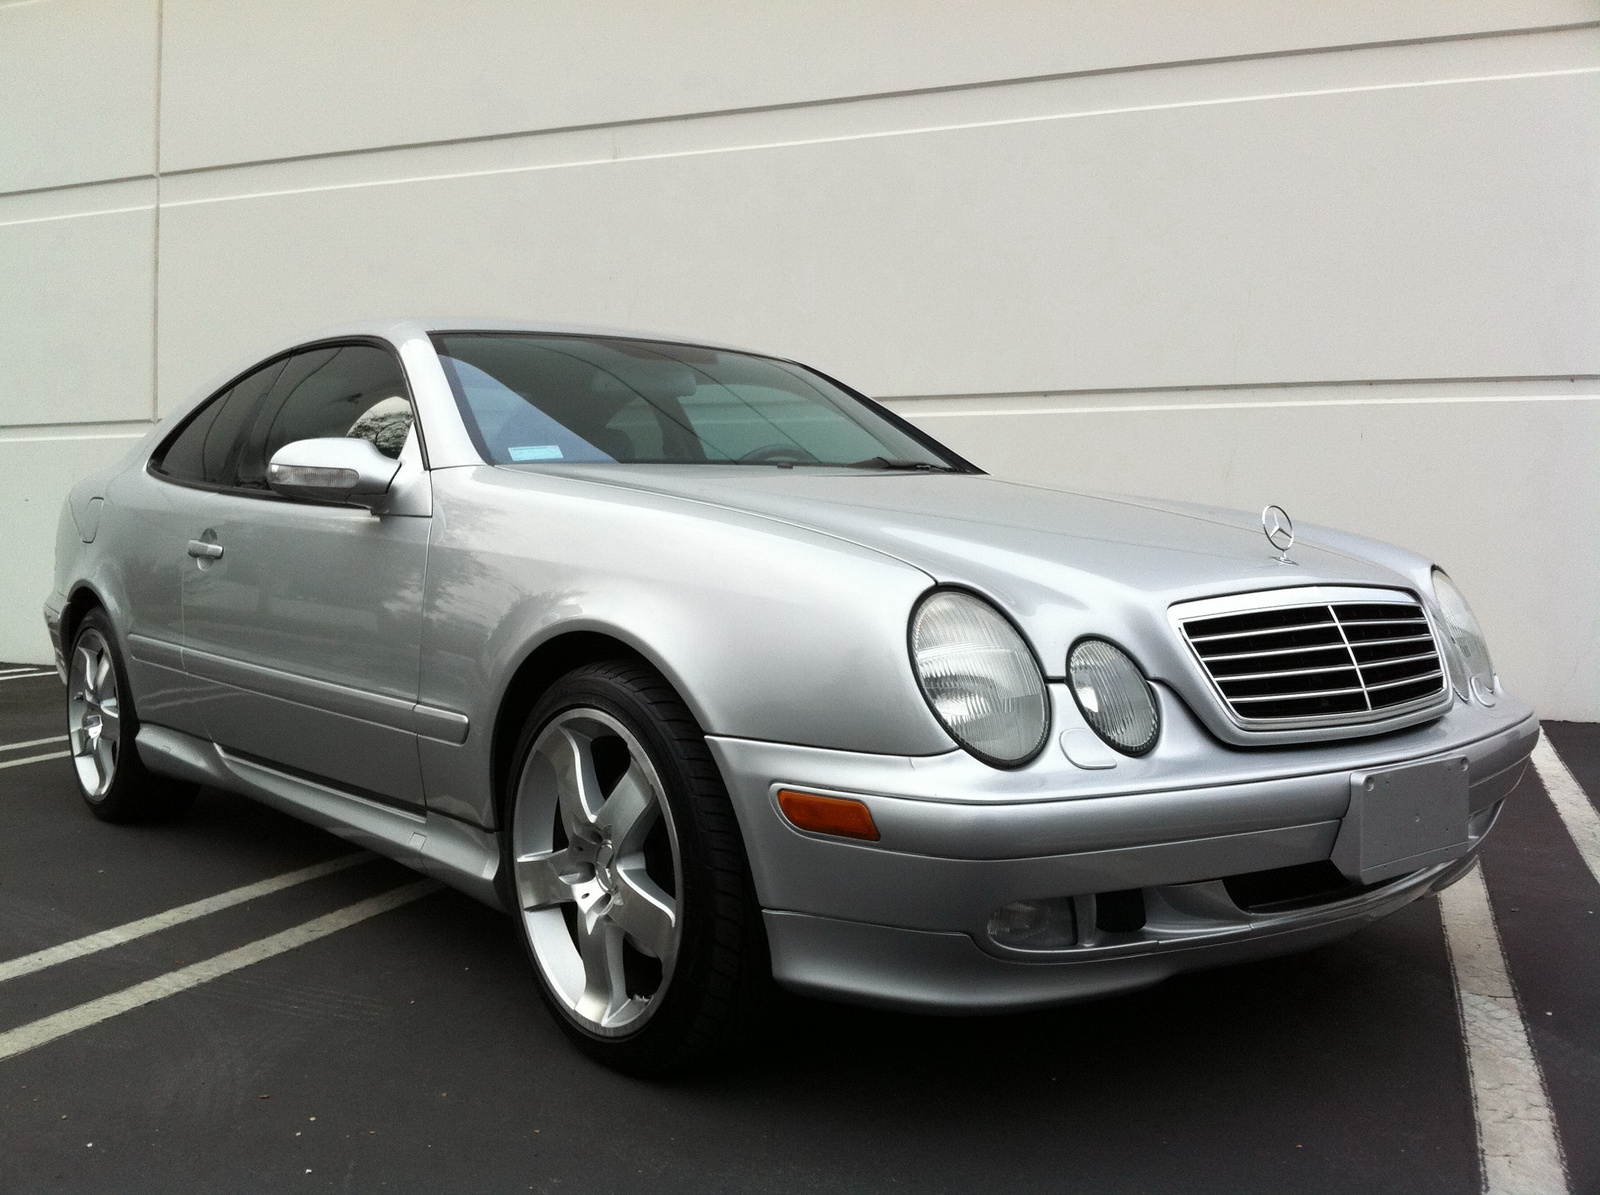 2000 mercedes benz clk class pictures cargurus. Black Bedroom Furniture Sets. Home Design Ideas